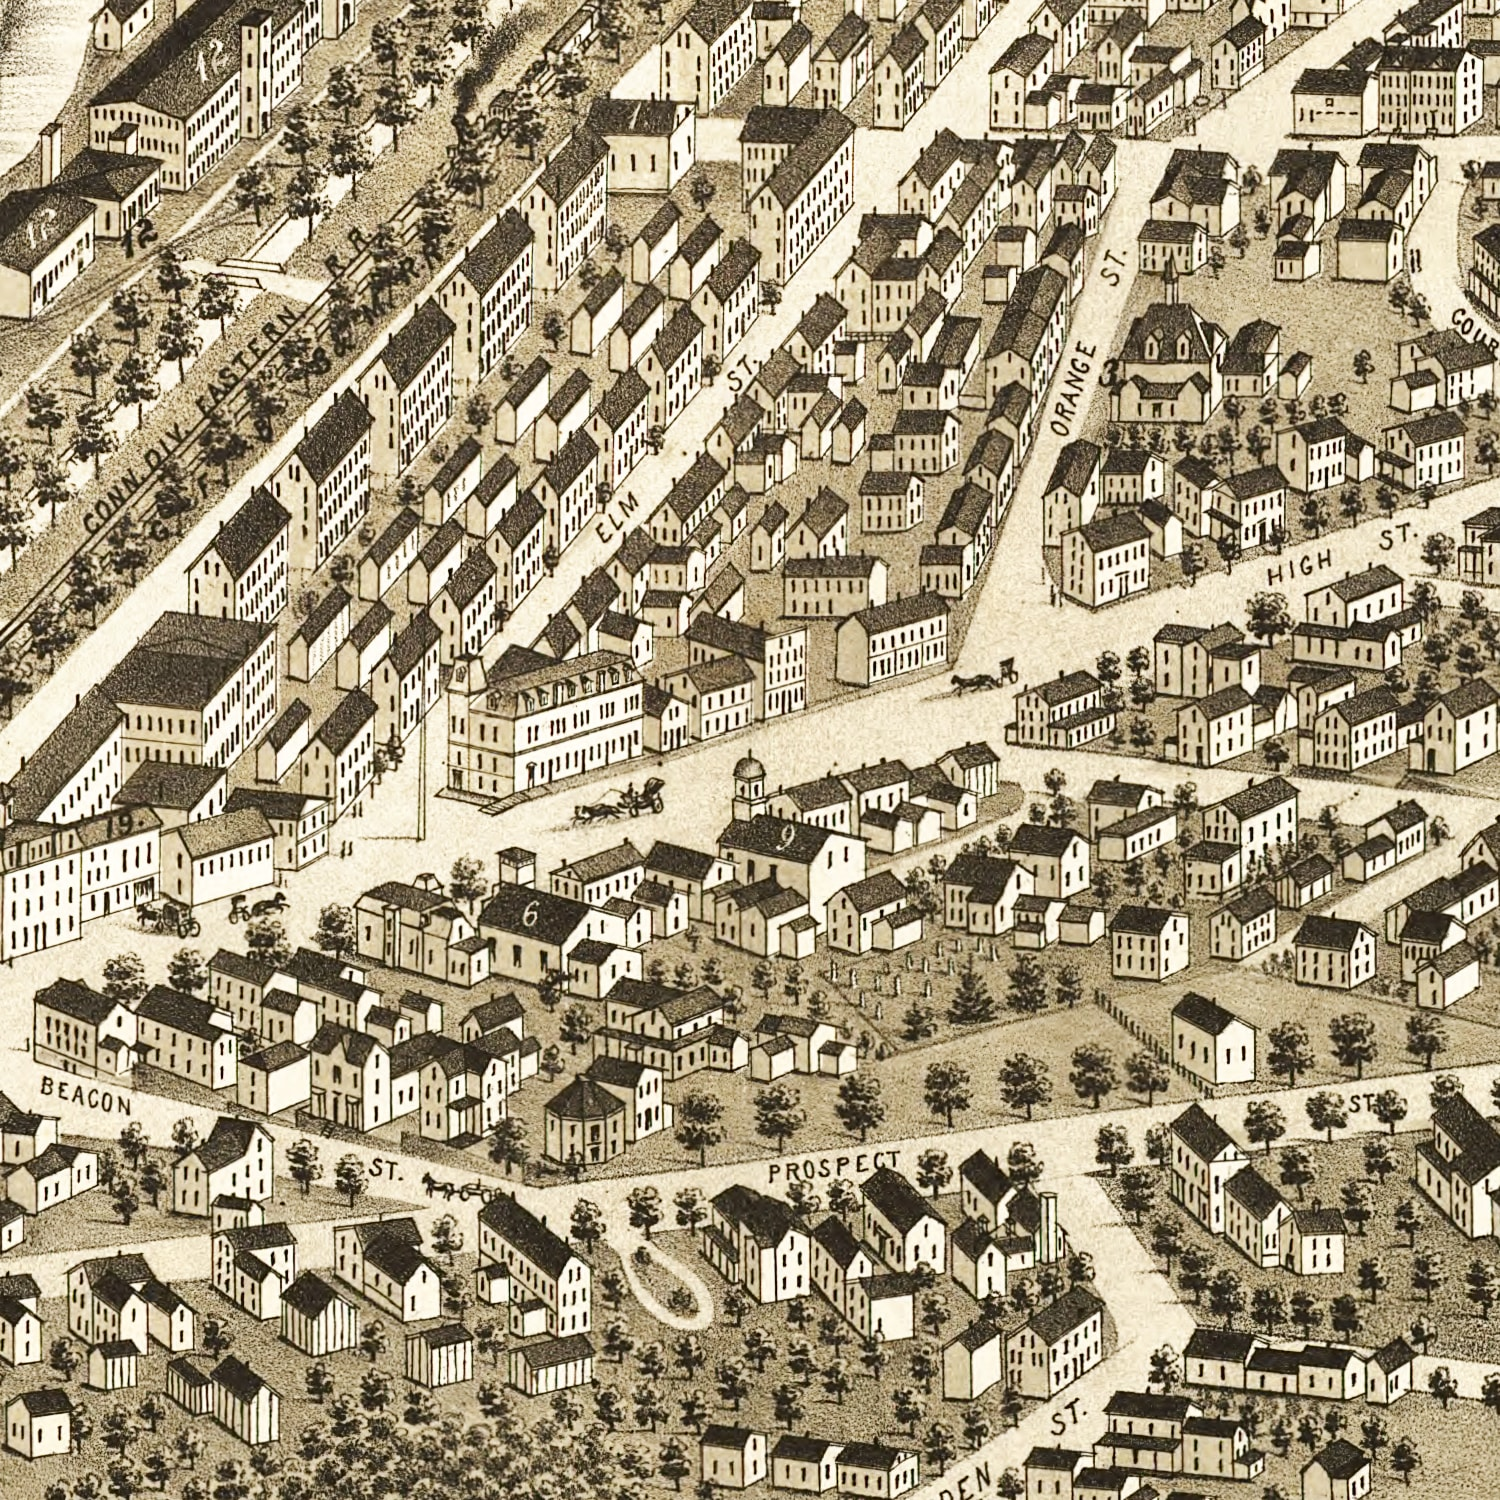 Vintage Map of Great Falls, New Hampshire 1877